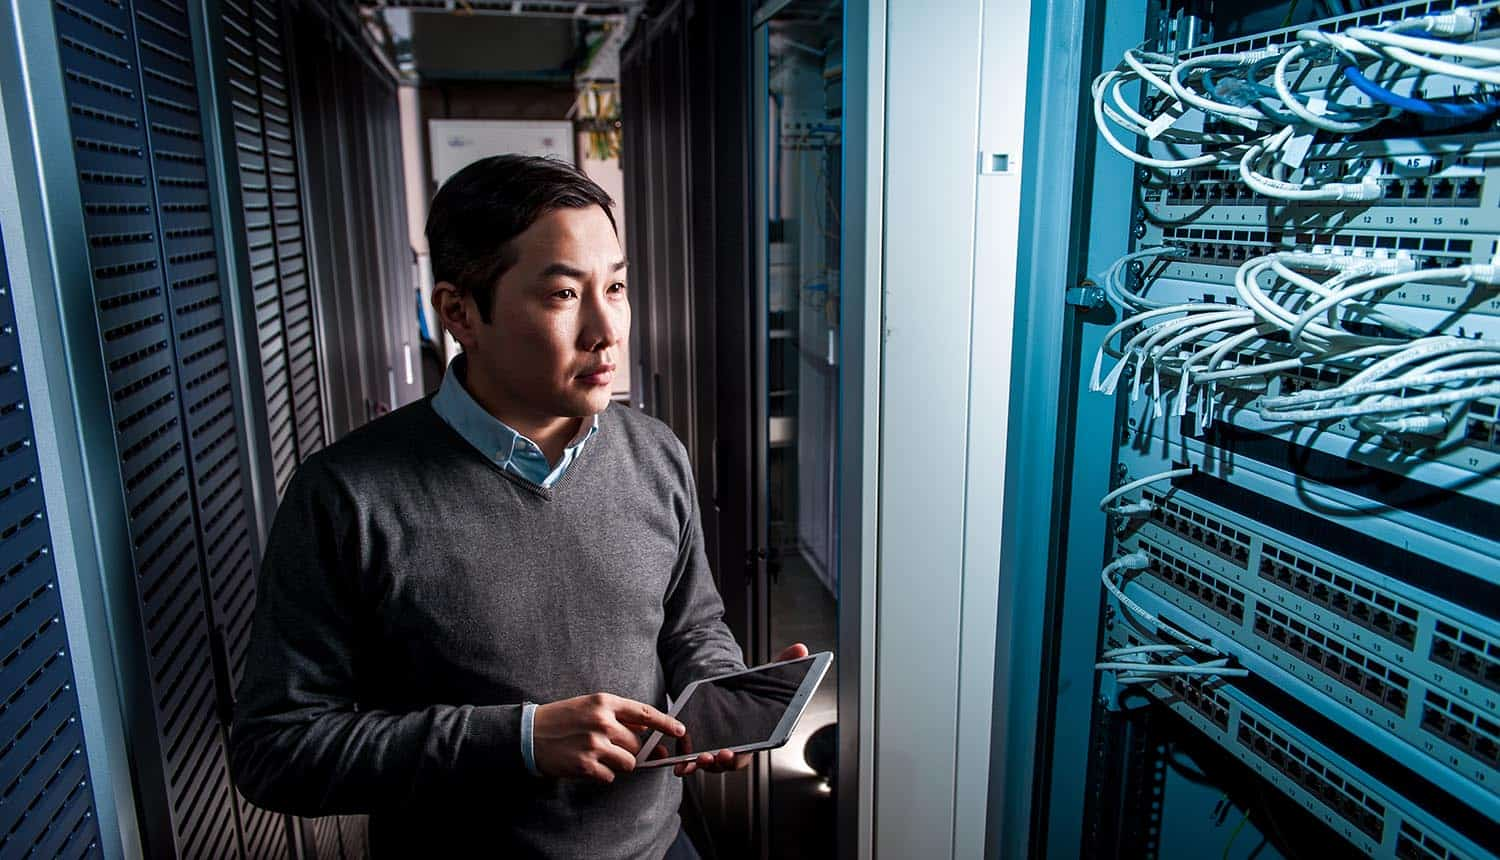 Engineer working in data center showing the ways to de-risk the data center